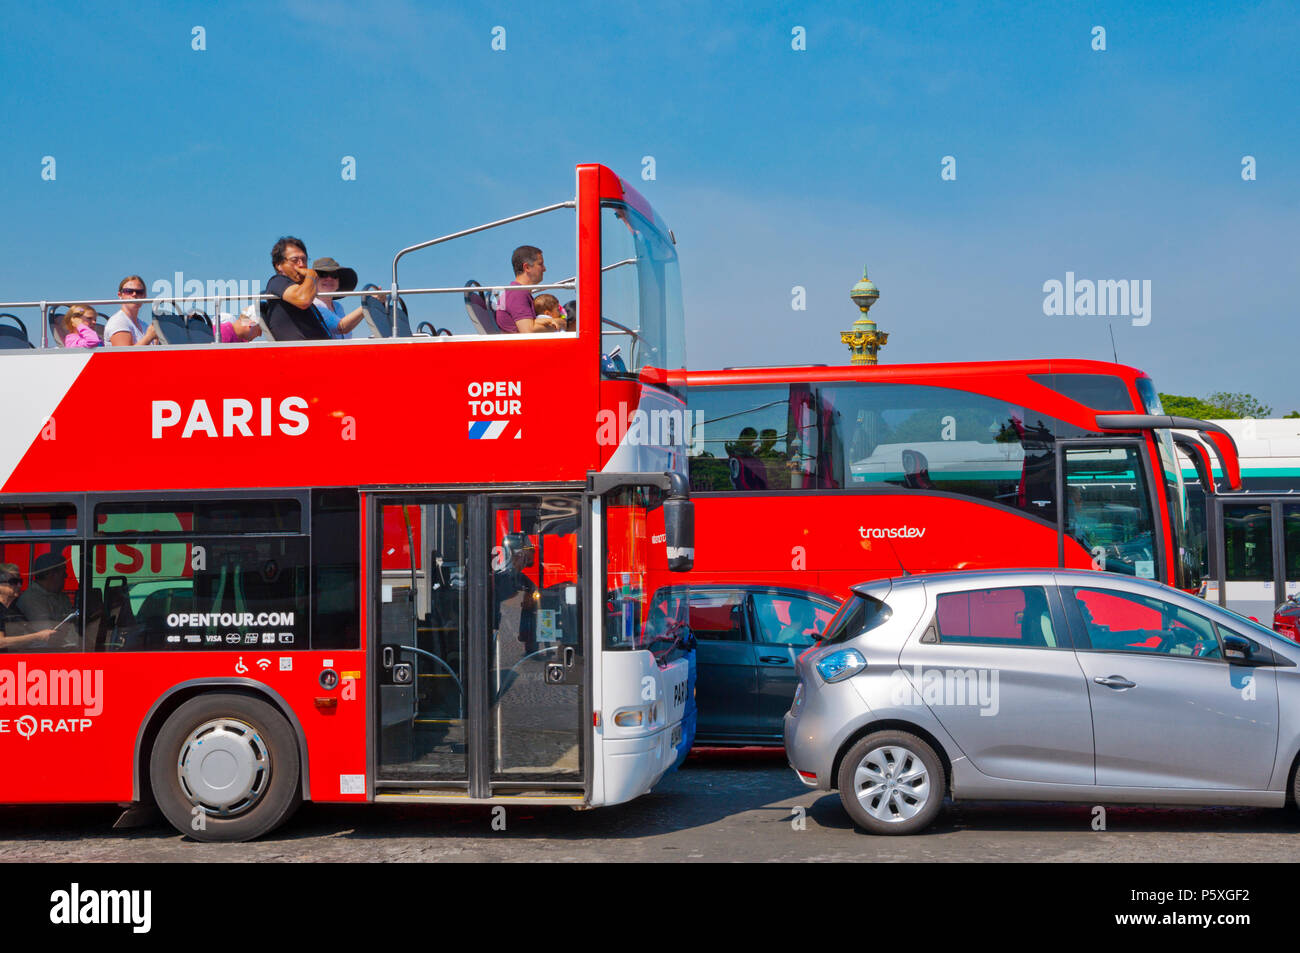 Traffic congestion, sightseeing bus, Place de la Concorde, Paris, France - Stock Image